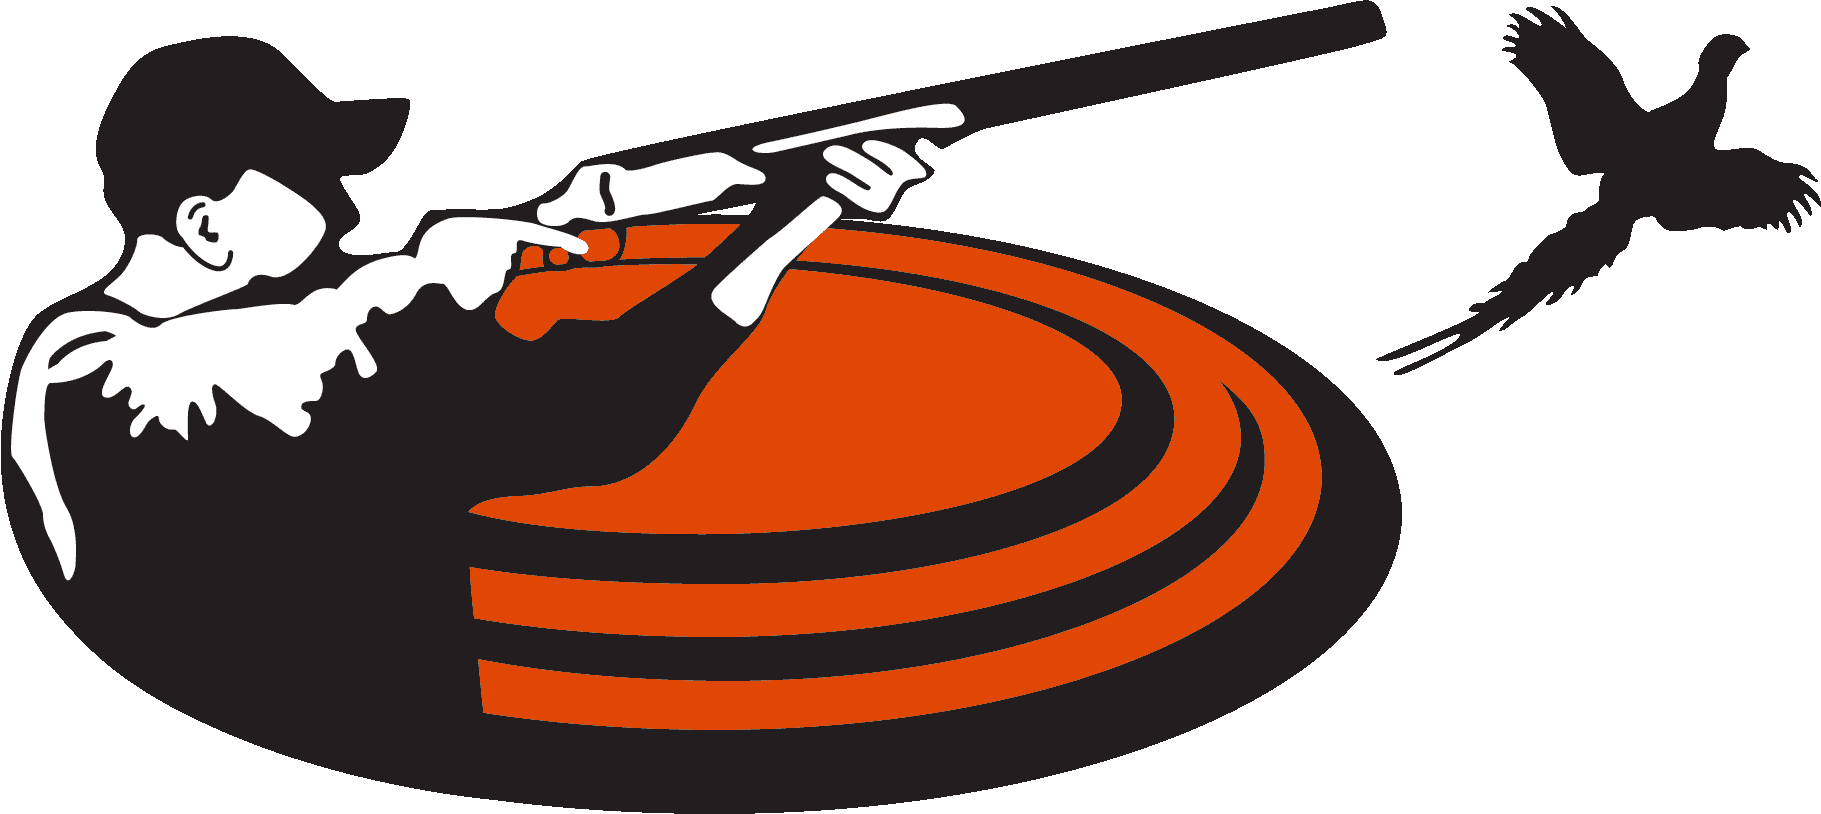 Shooting Clays Clipart.